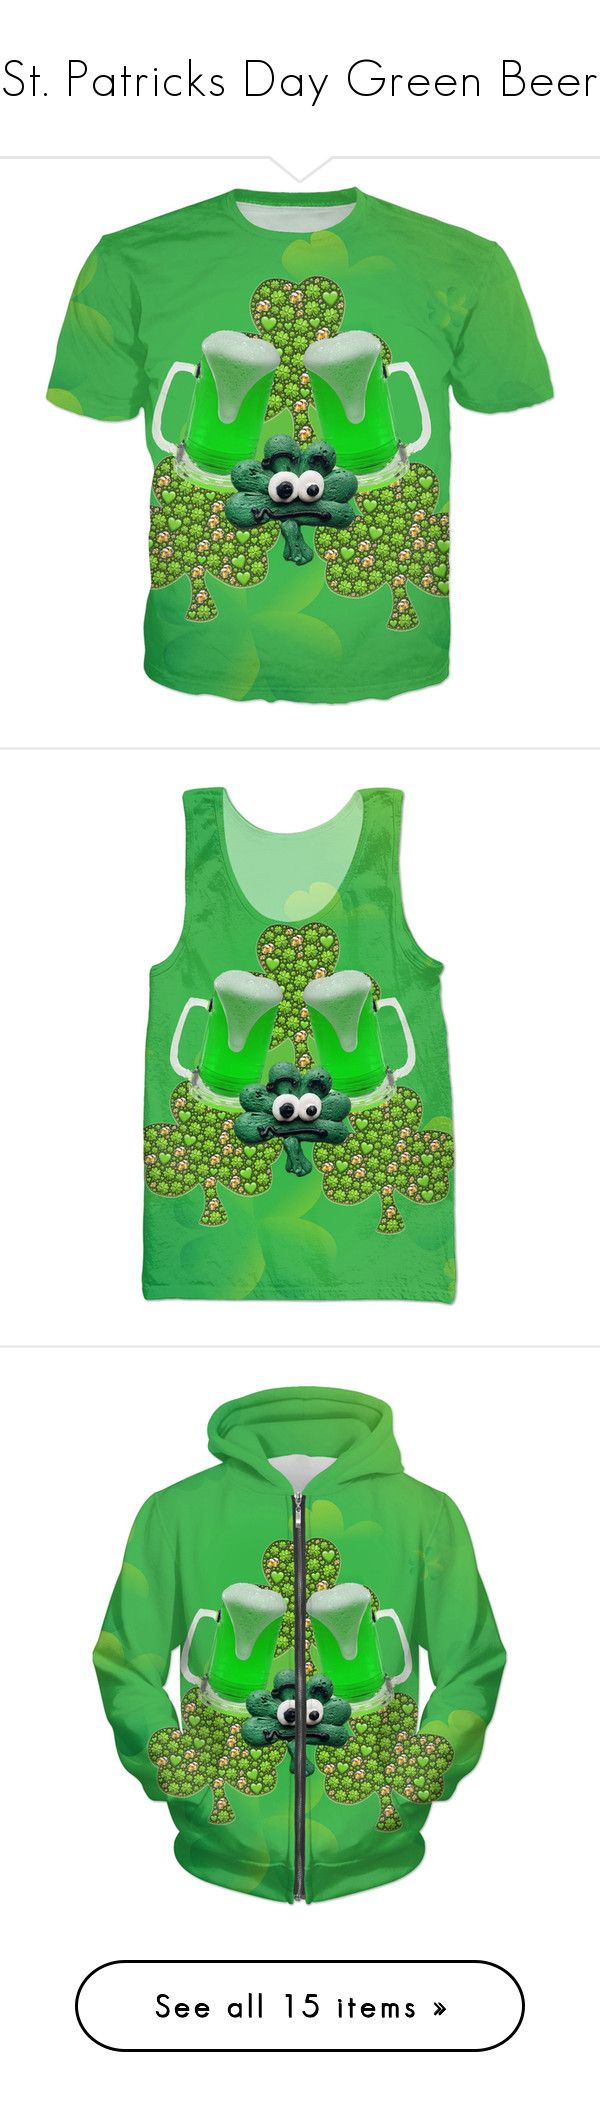 """""""St. Patricks Day Green Beer"""" by erikakaisersot ❤ liked on Polyvore featuring tops, t-shirts, clover t shirt, green tee, green top, green t shirt, hoodies, sweatshirts, men's fashion and shorts"""